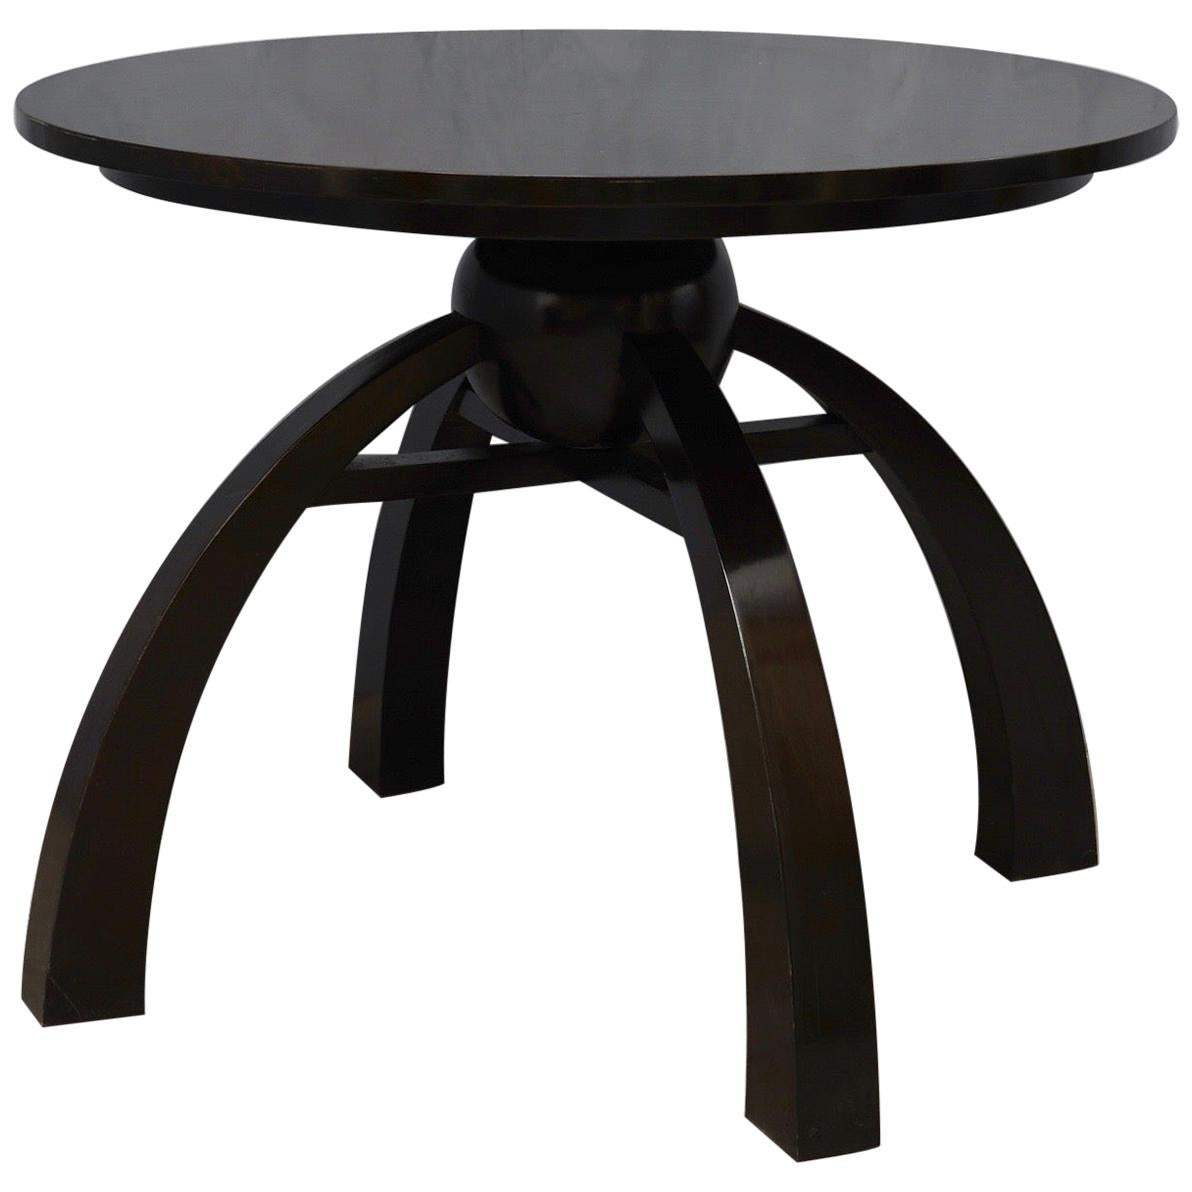 Art Deco Round Black Shellac Italian Side Table, 1930